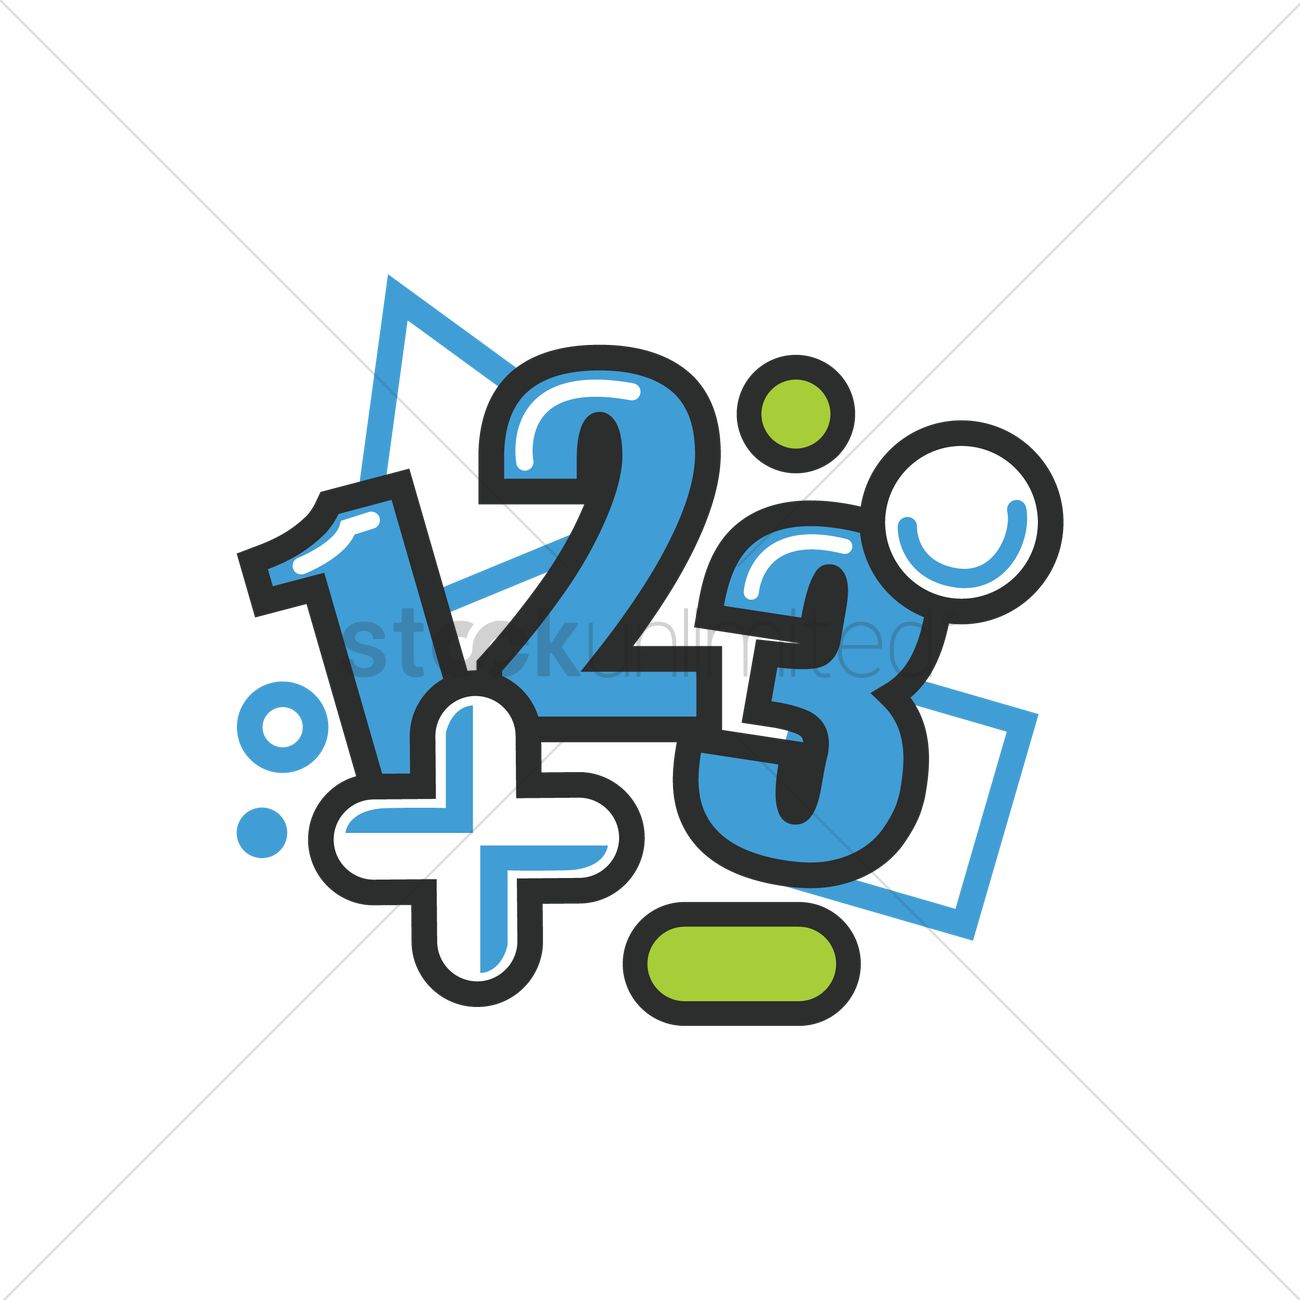 Pictures For Maths   Free download best Pictures For Maths on ...